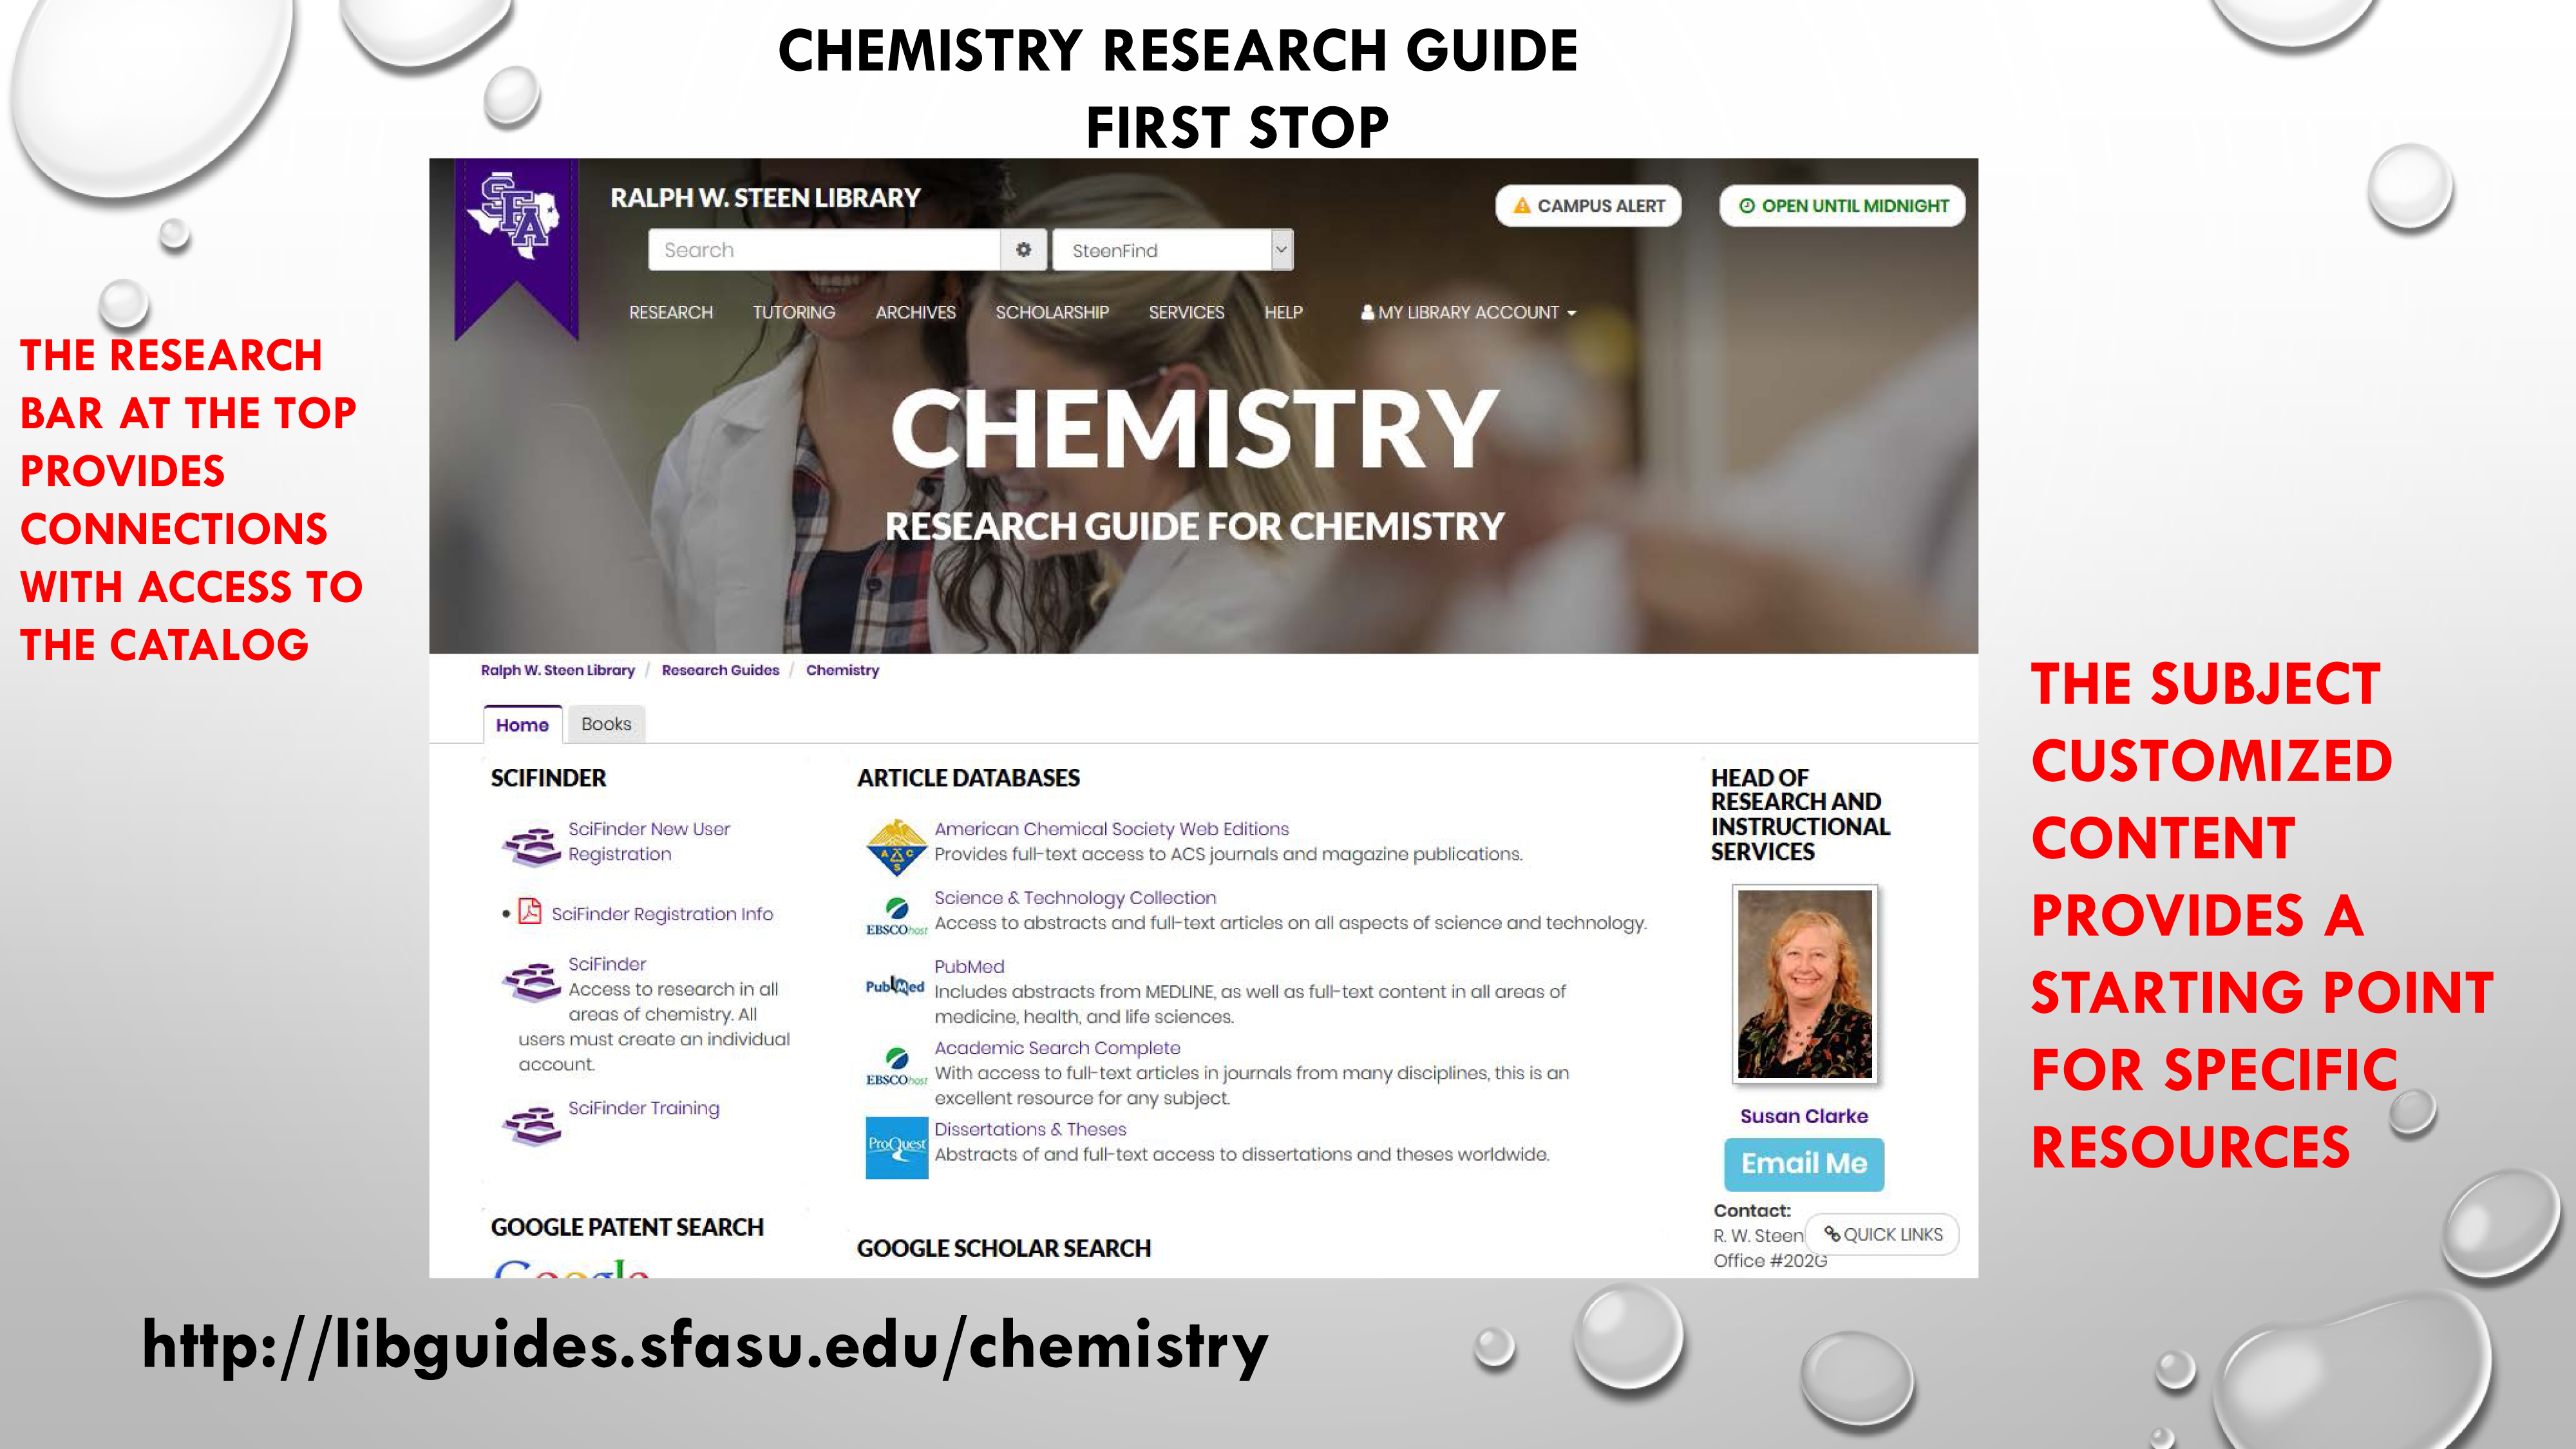 Chemistry Research Guide - First Stop